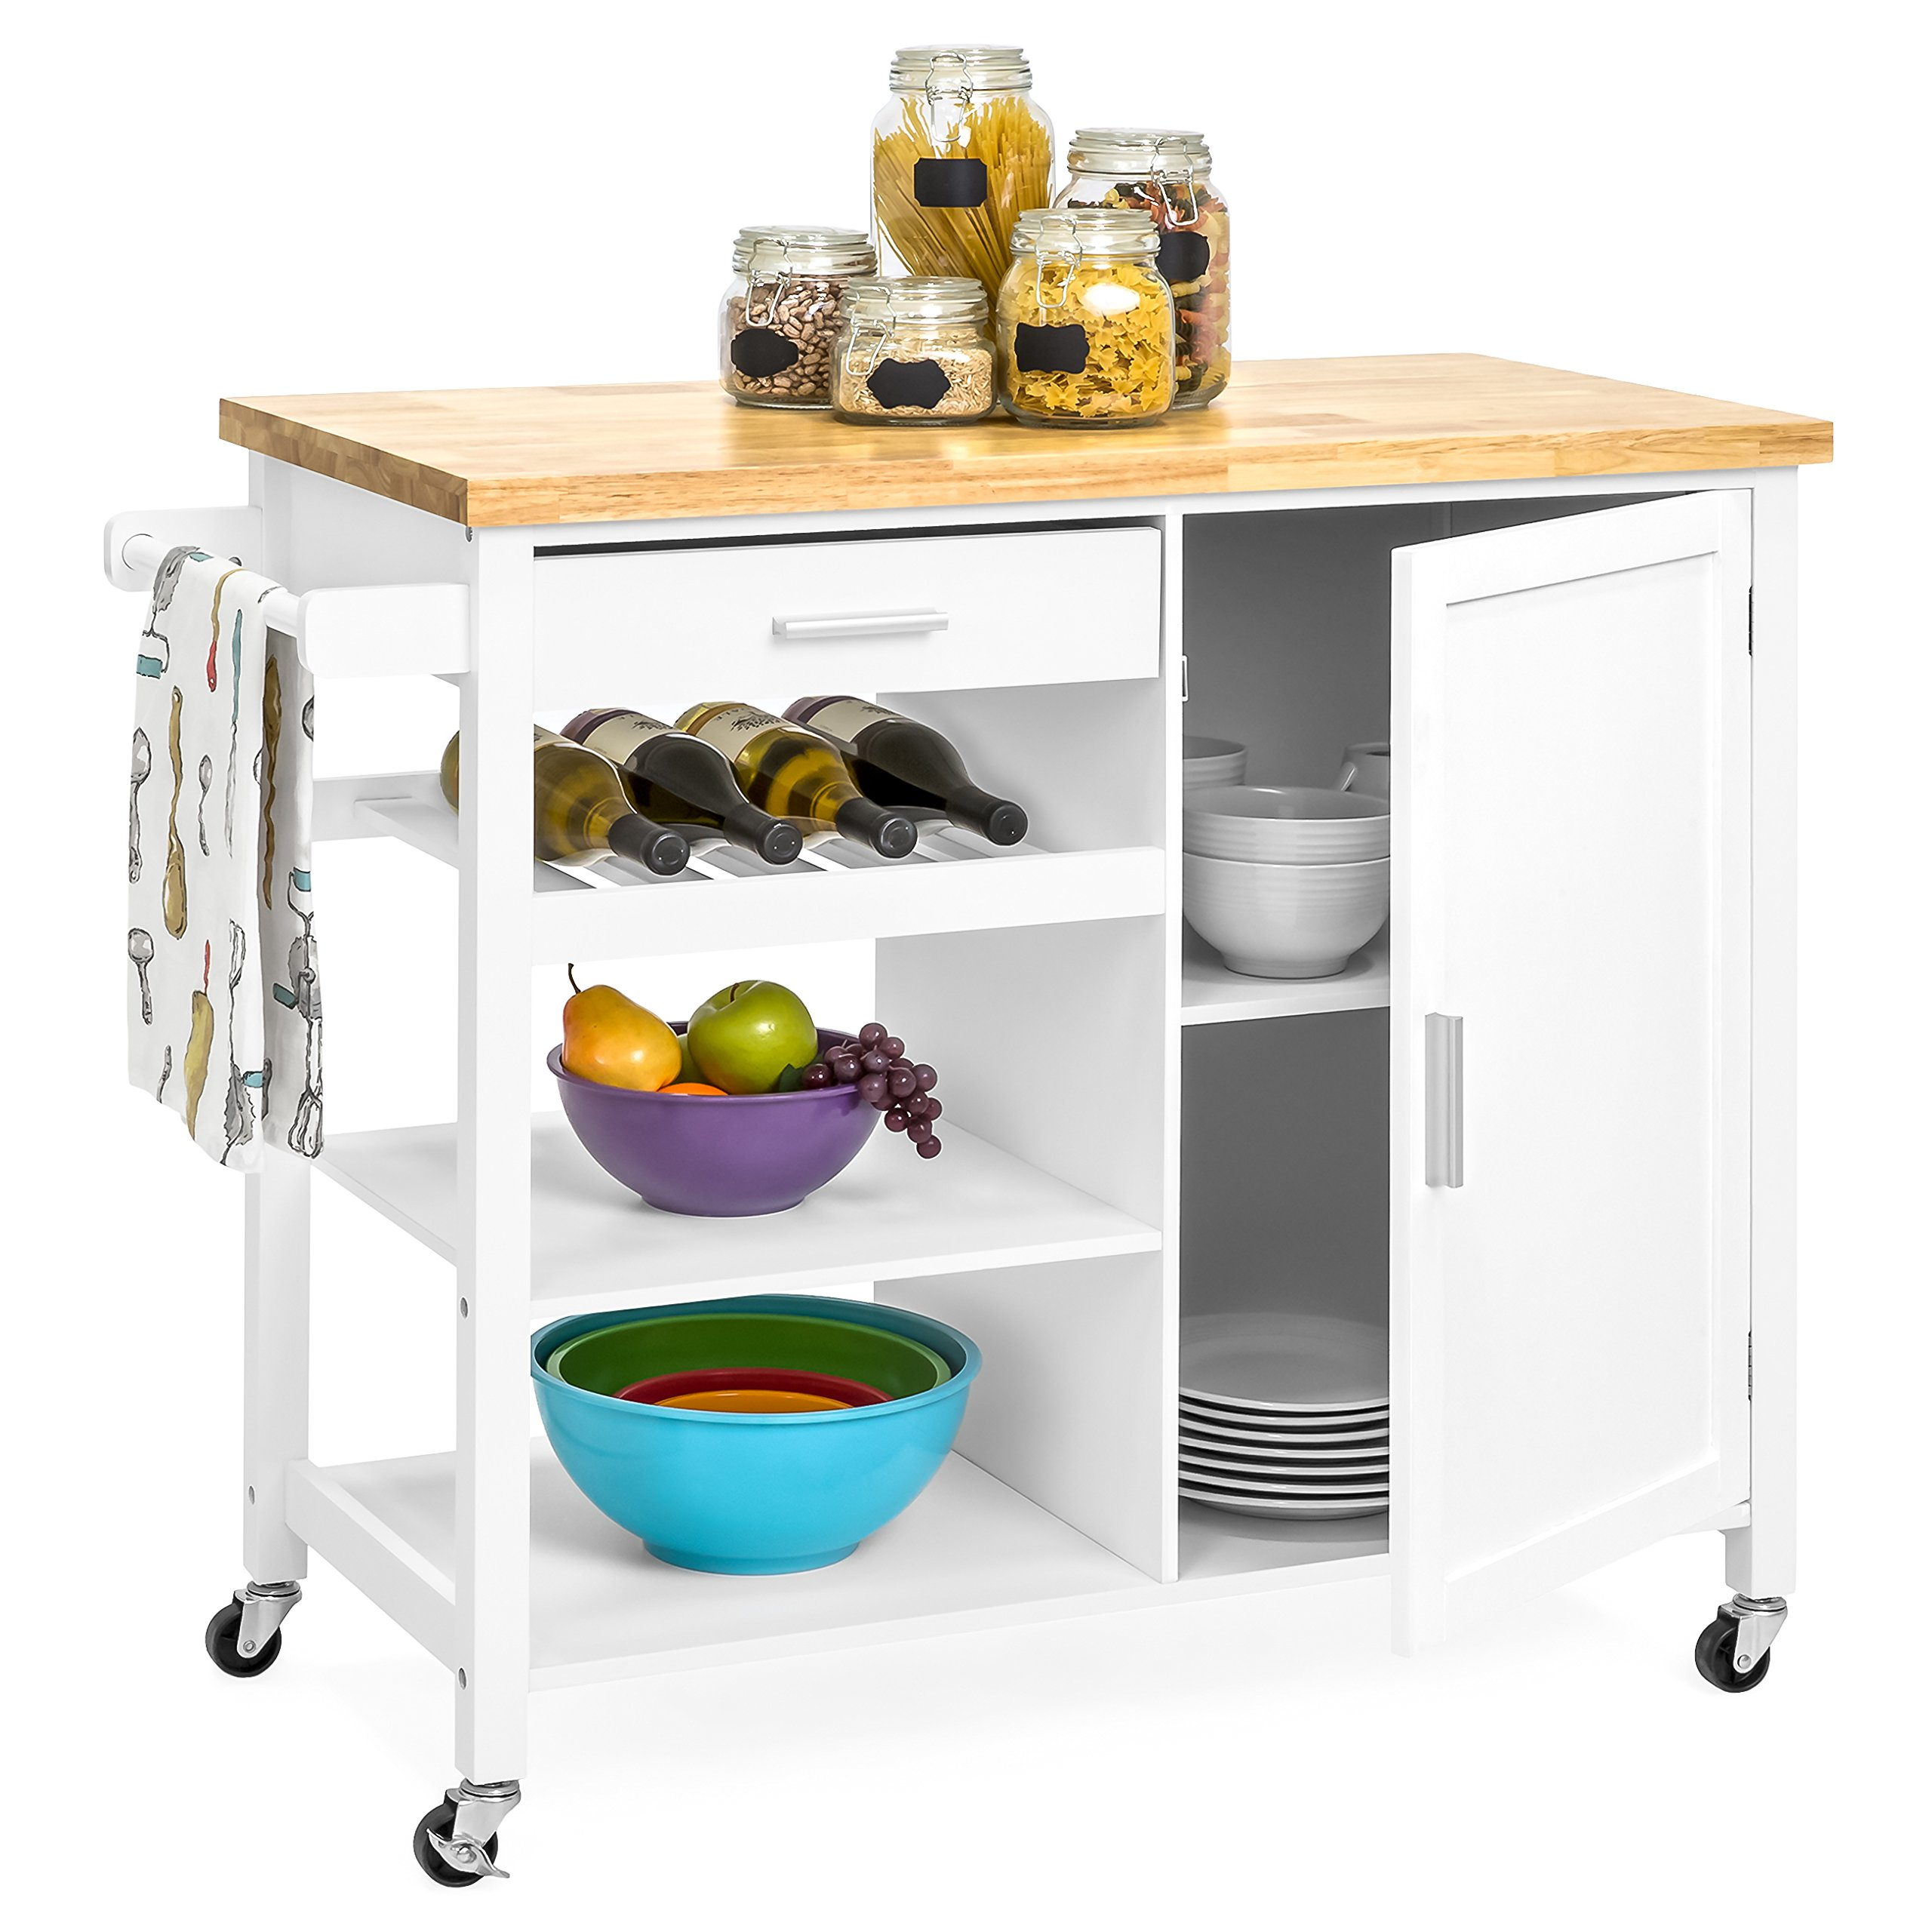 Best Choice Products Portable Kitchen Island Cocktail Cart for Serving, Storage, Décor w/Wood Top, Wine Shelf, Cabinet, Drawer, Towel Rack - White